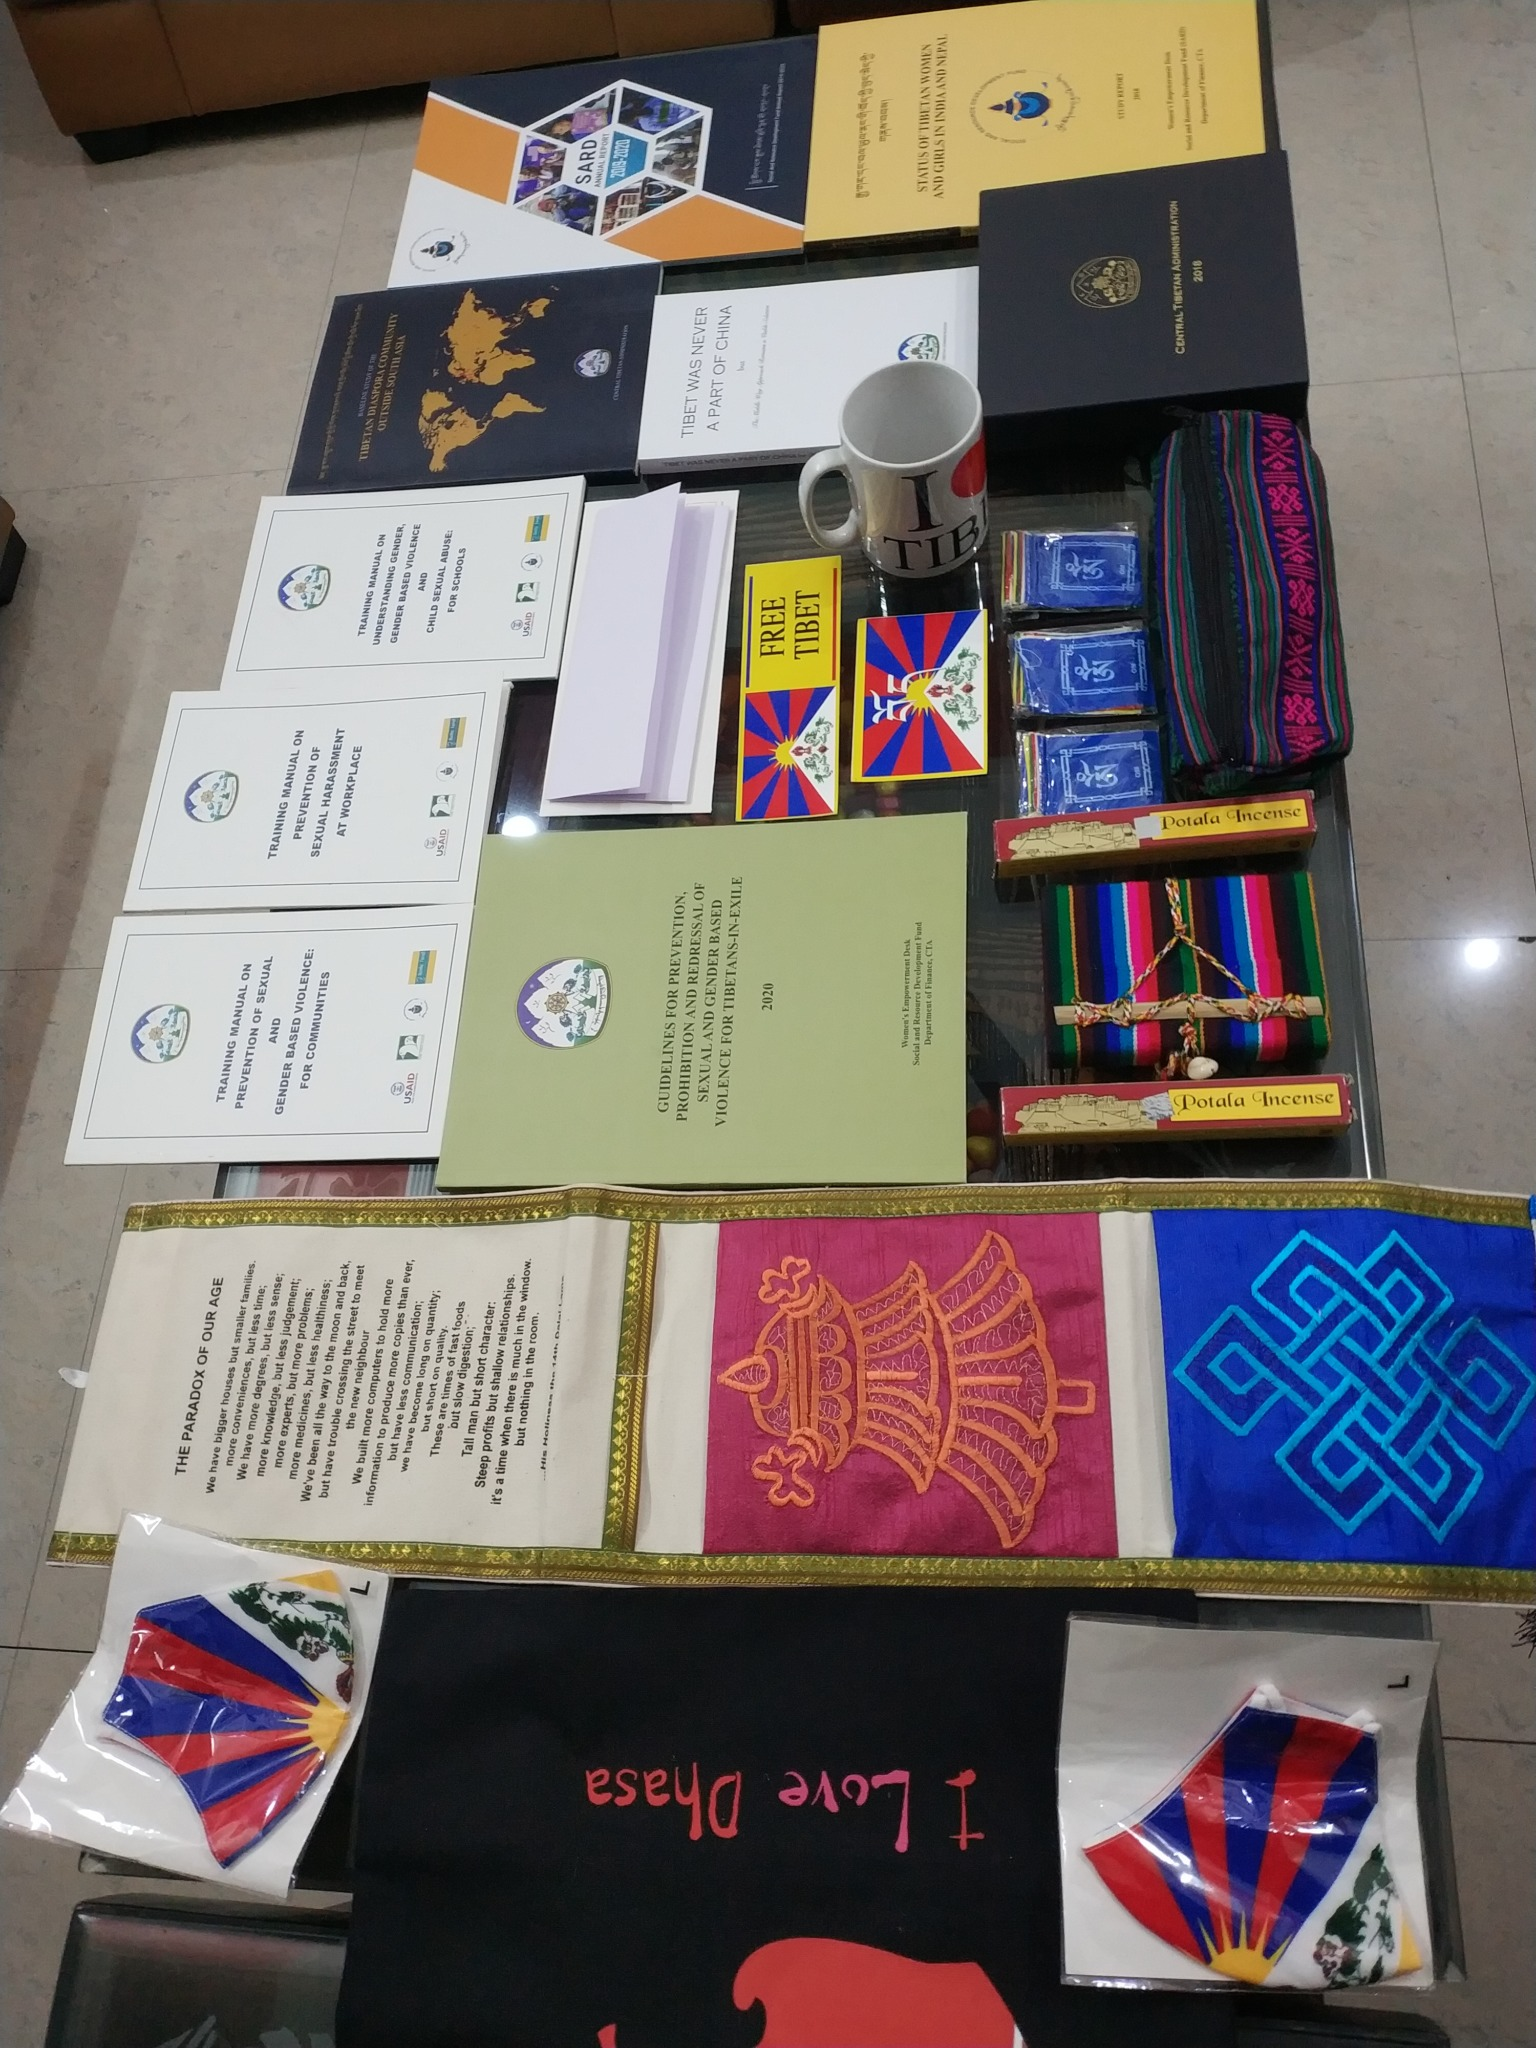 Brochures, books and other educational material, flyers, incense, stickers, a porcelain cup with CTA logo, Tibetan prayer flags, a pen pouch and notebook diary in traditional Tibetan print, personal protective masks, and banners of the CTA.